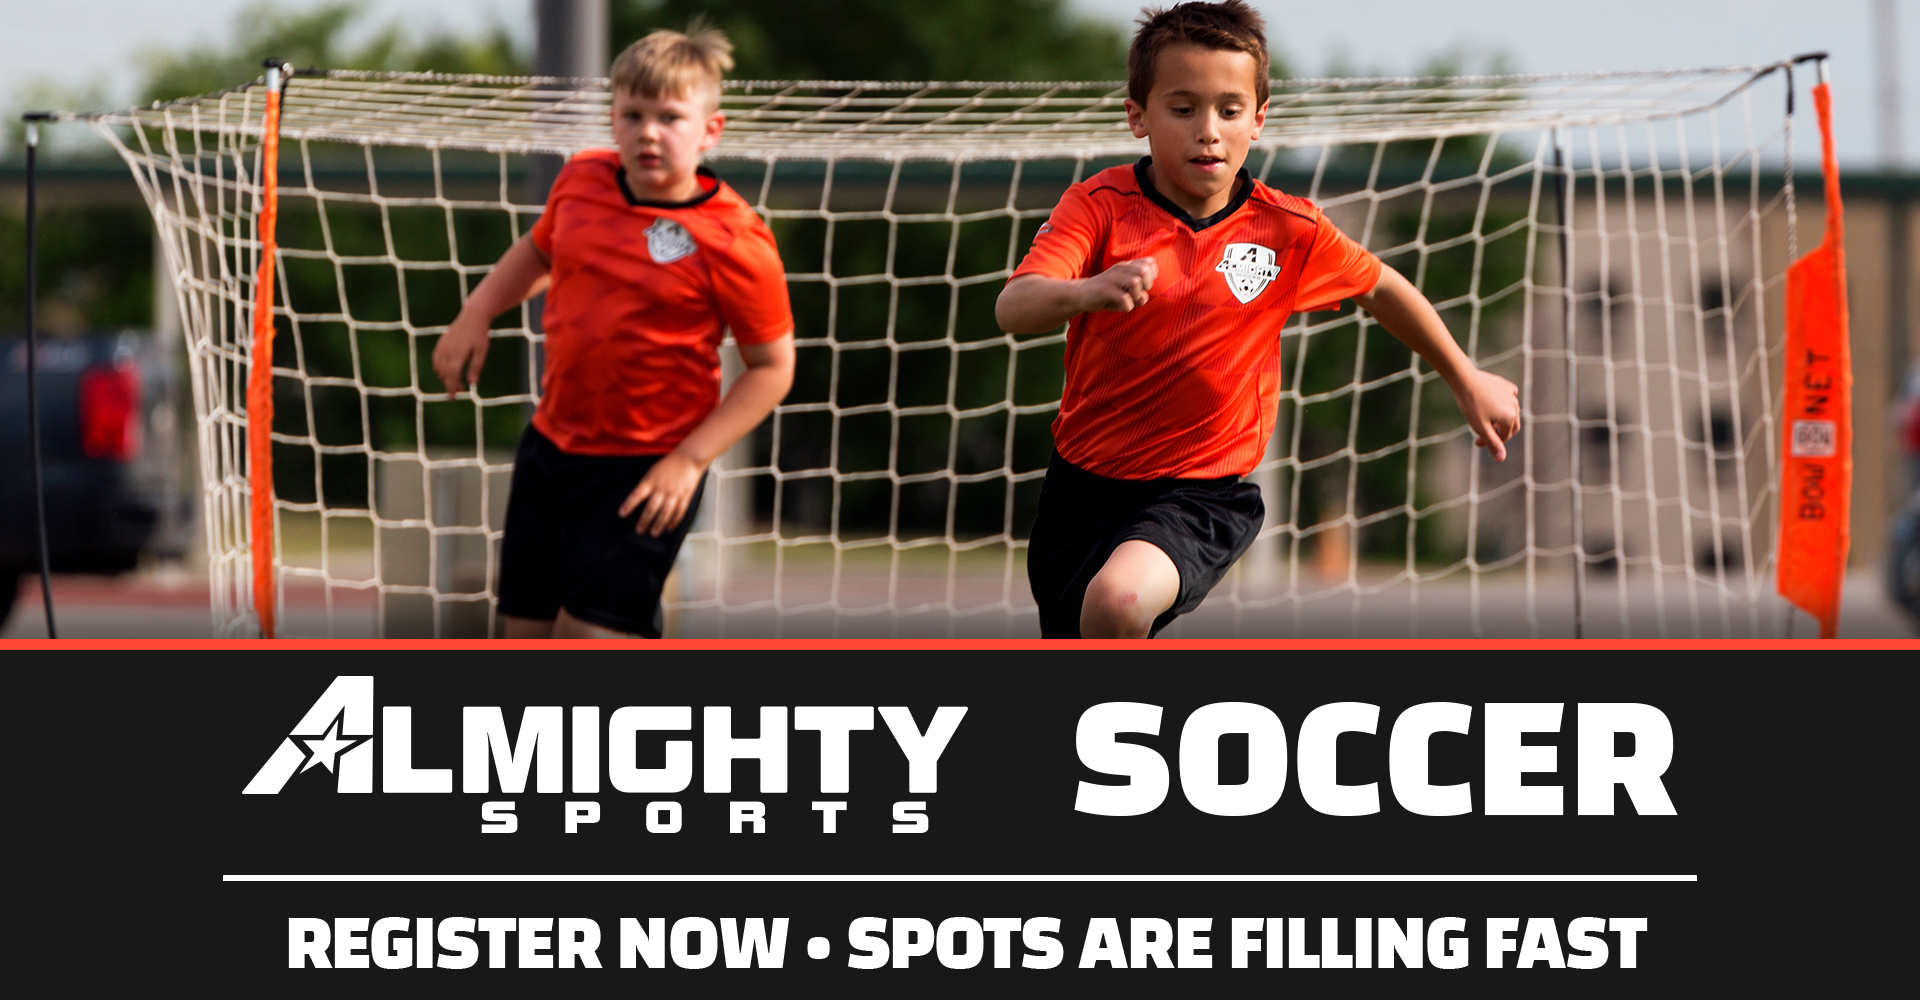 Slide Image: Almighty Soccer